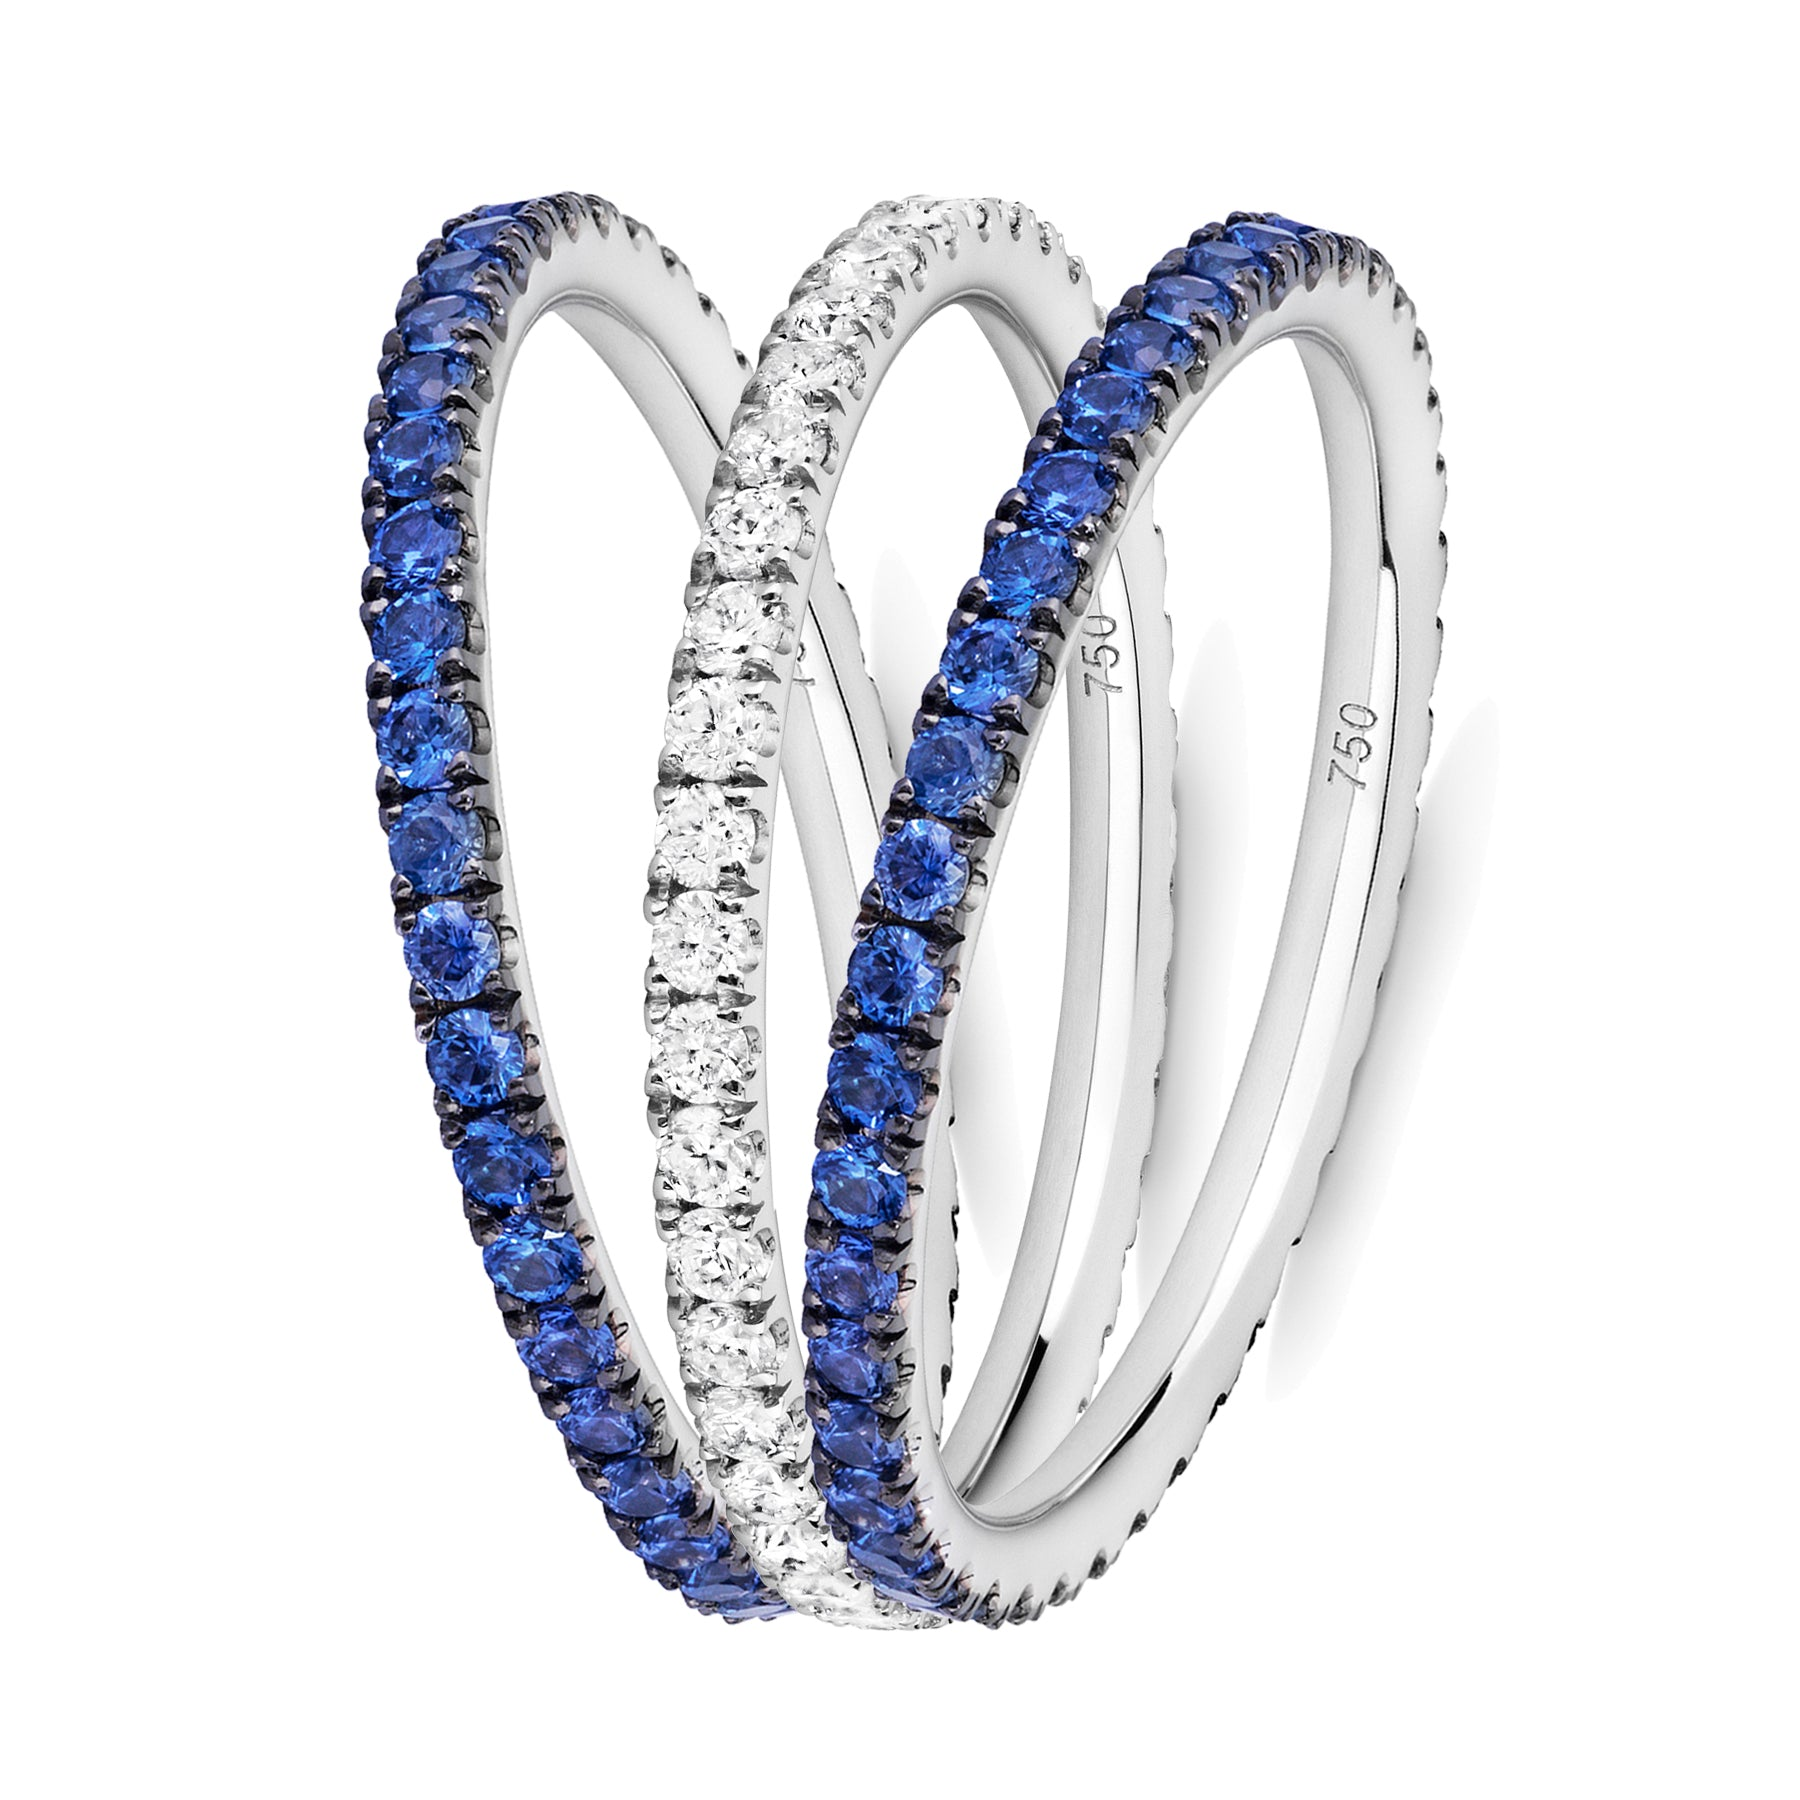 La Mer eternity ring stack